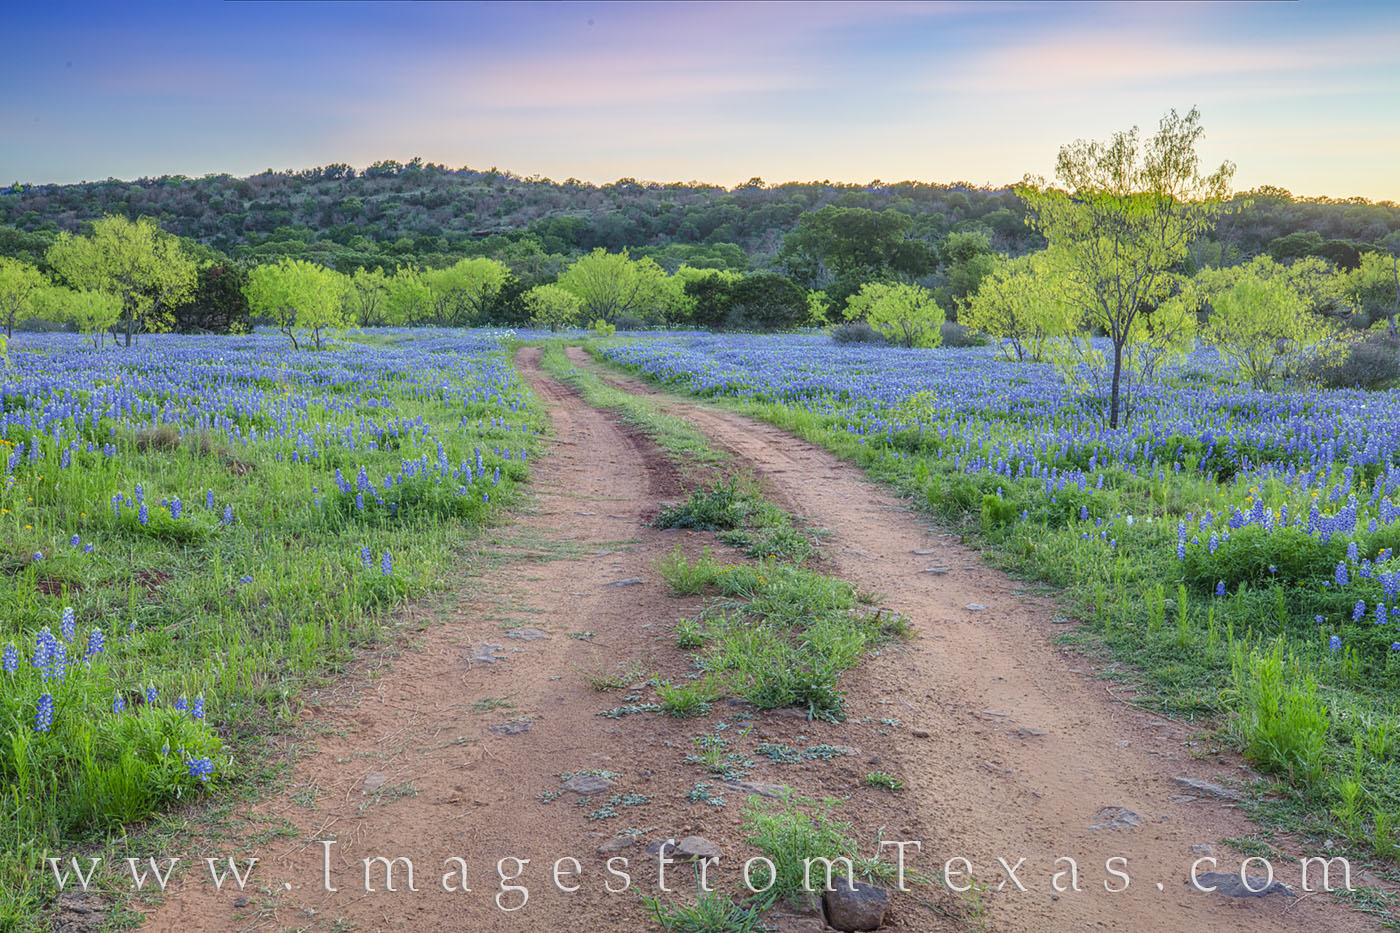 bluebonnets, wildflowers, sunset, hill country, evening, dirt road, peace, photo